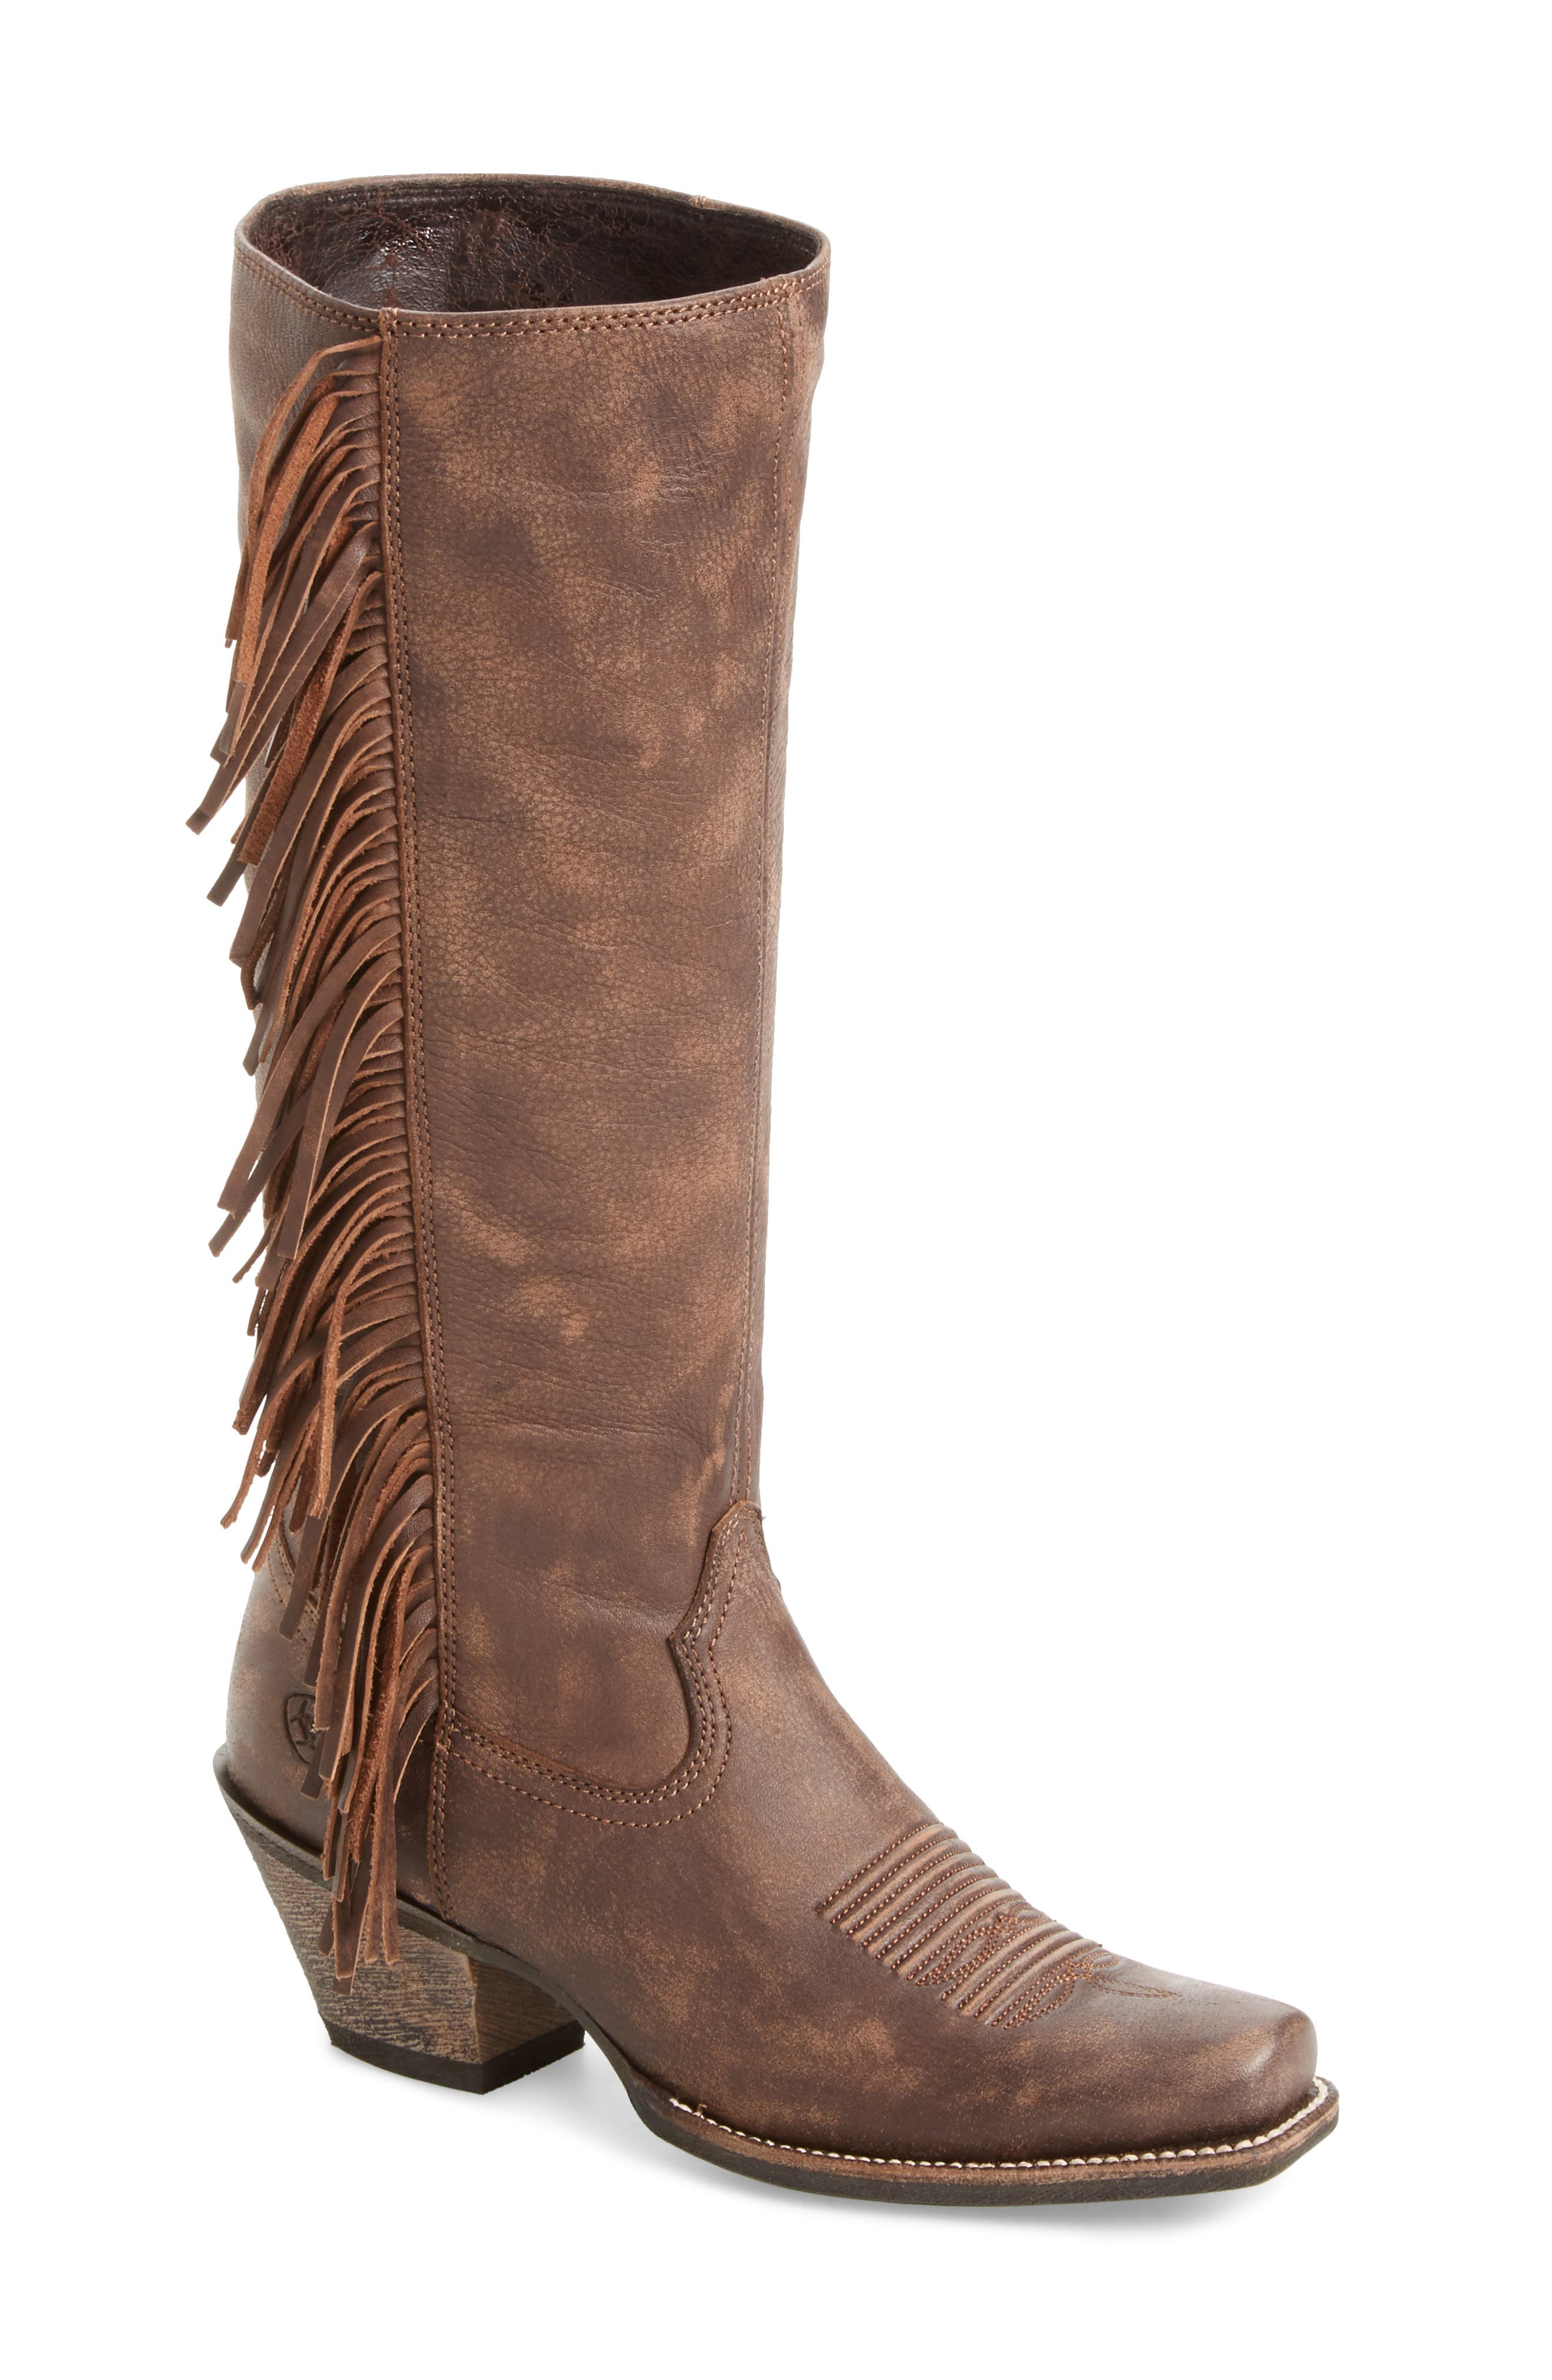 Leyton Fringe Western Boot,                         Main,                         color, TACK ROOM CHOCOLATE LEATHER